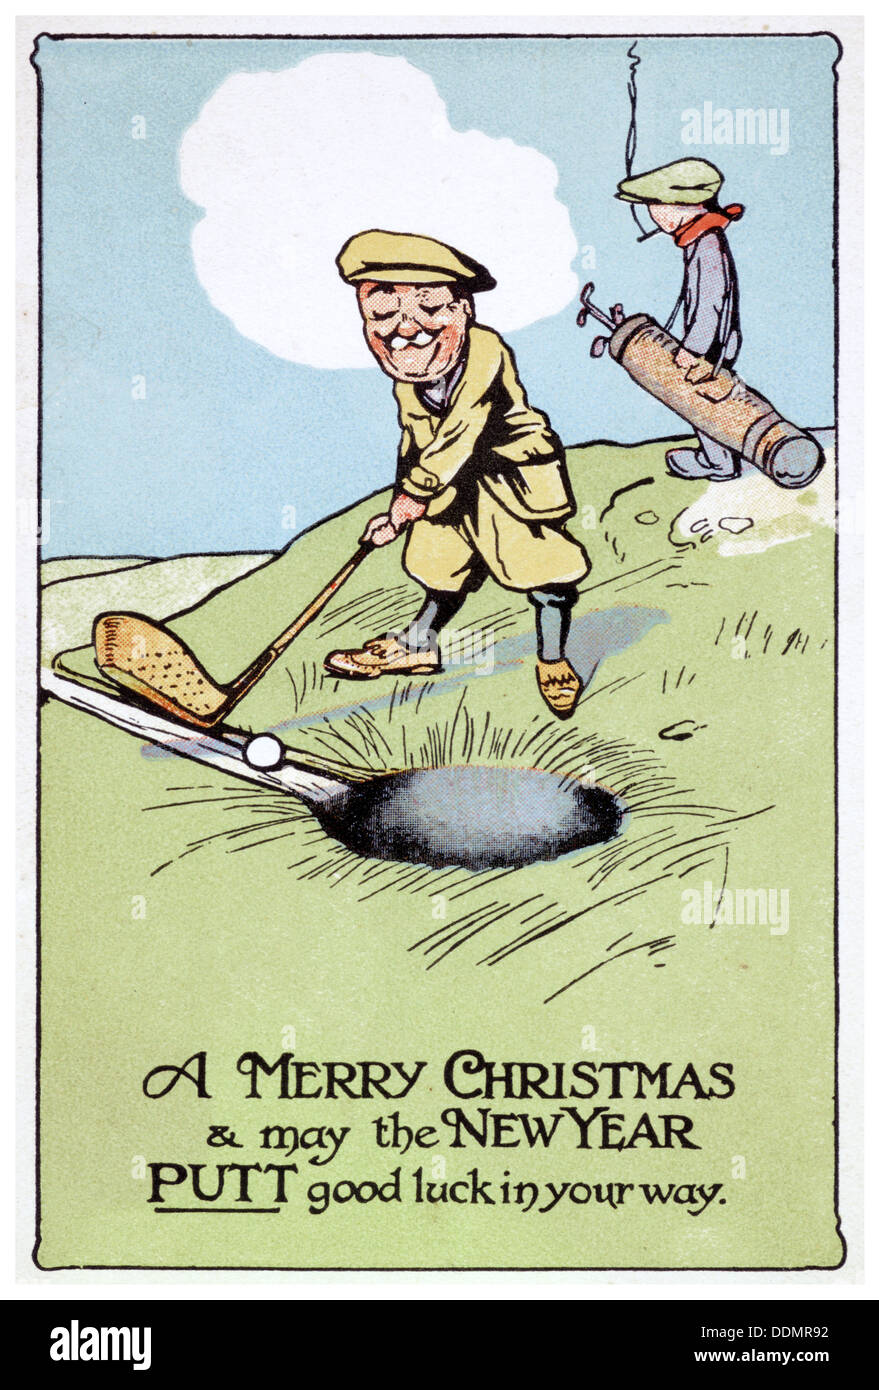 Christmas Card Artist.Christmas Card With Golfing Theme British 1913 Artist